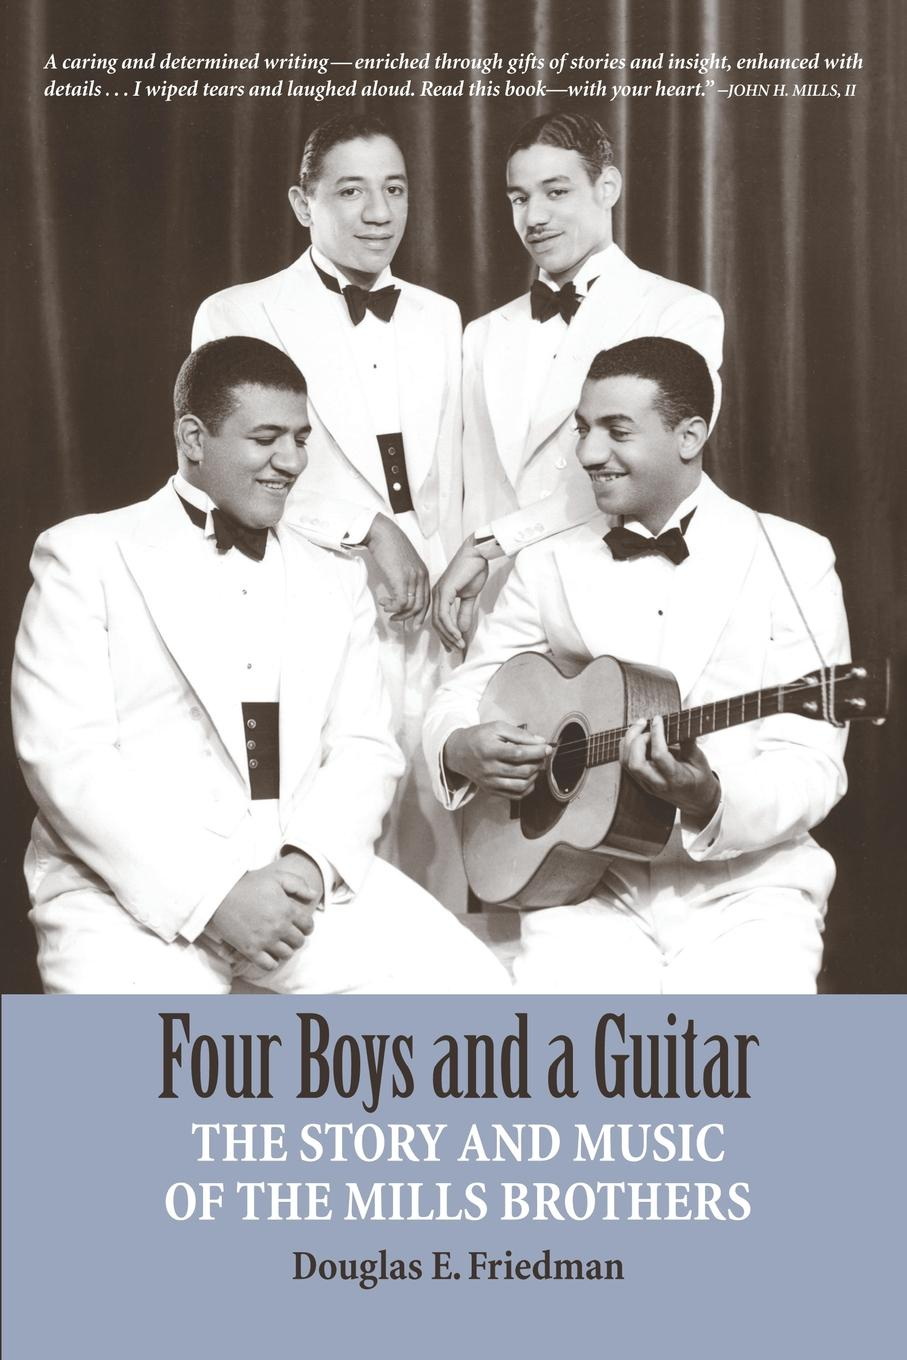 Douglas E. Friedman FOUR BOYS AND A GUITAR. The Story and Music of The Mills Brothers